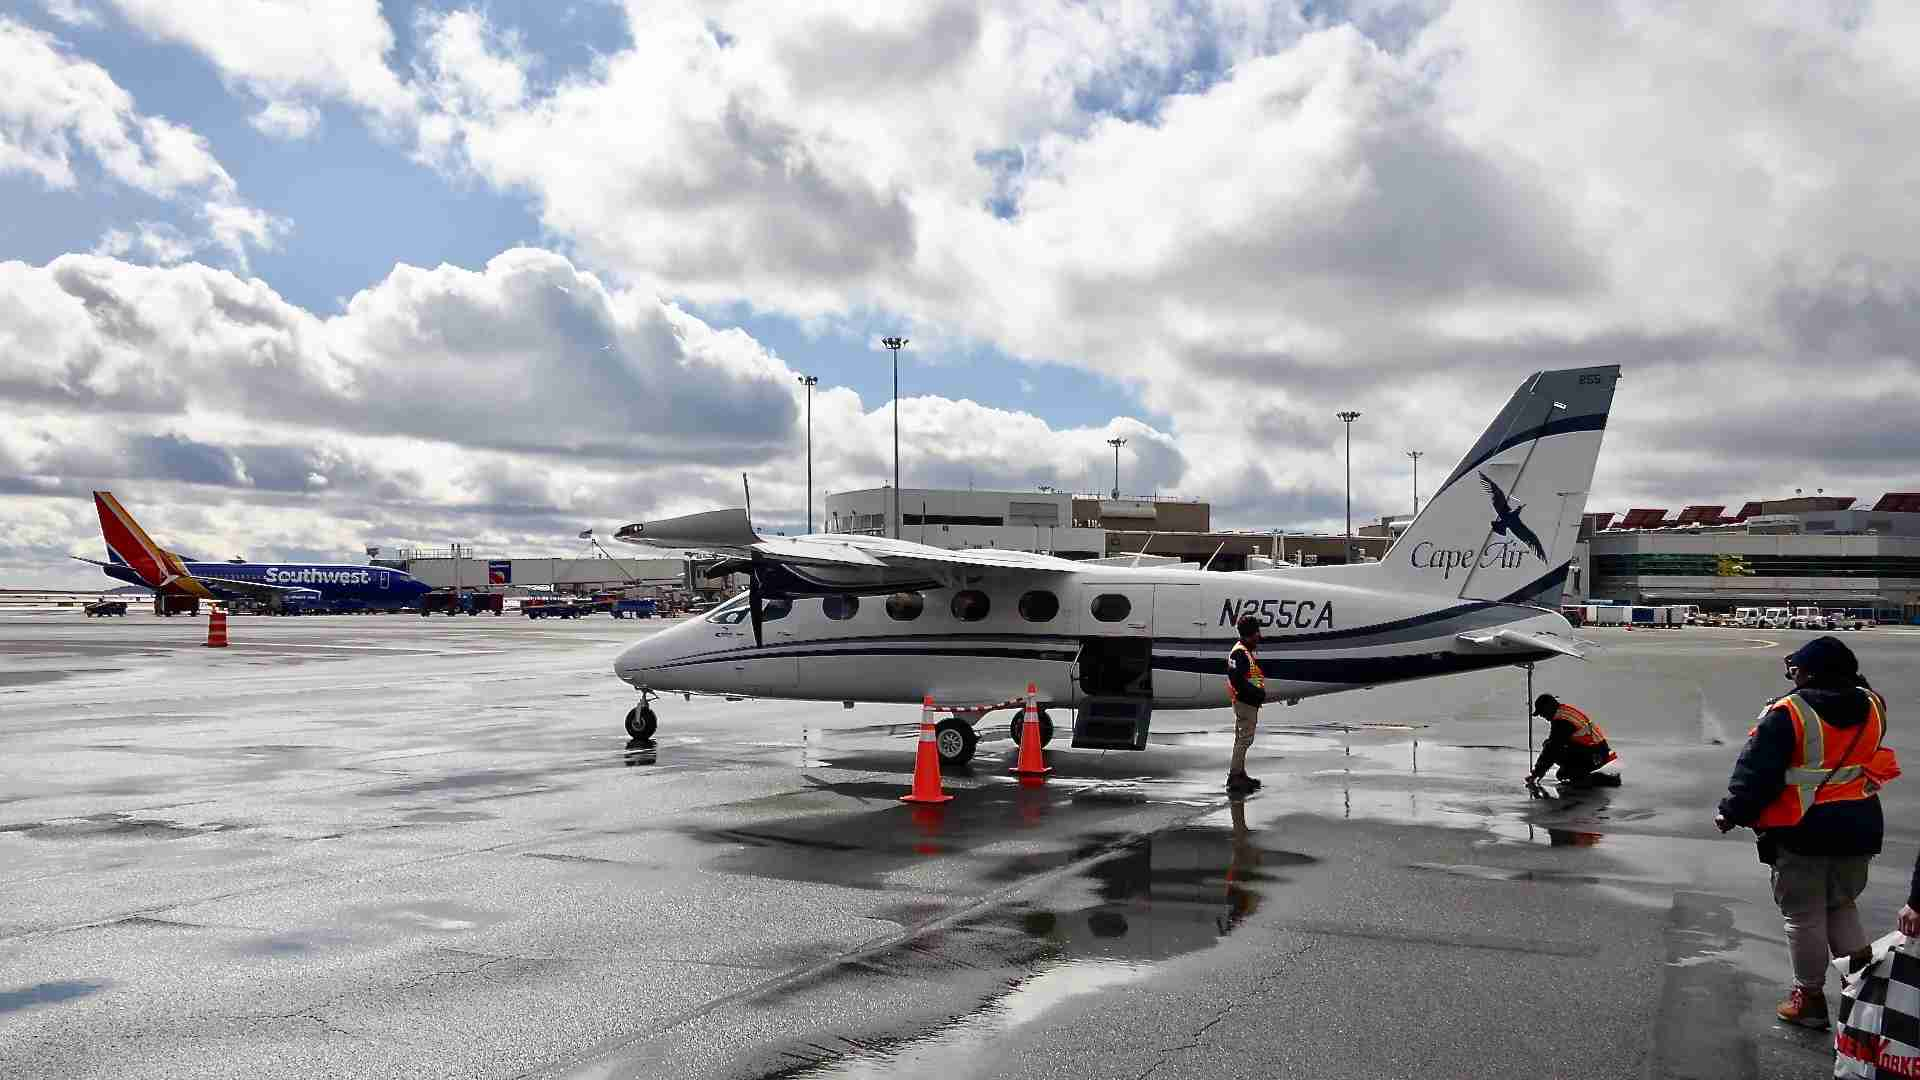 One of Cape Air